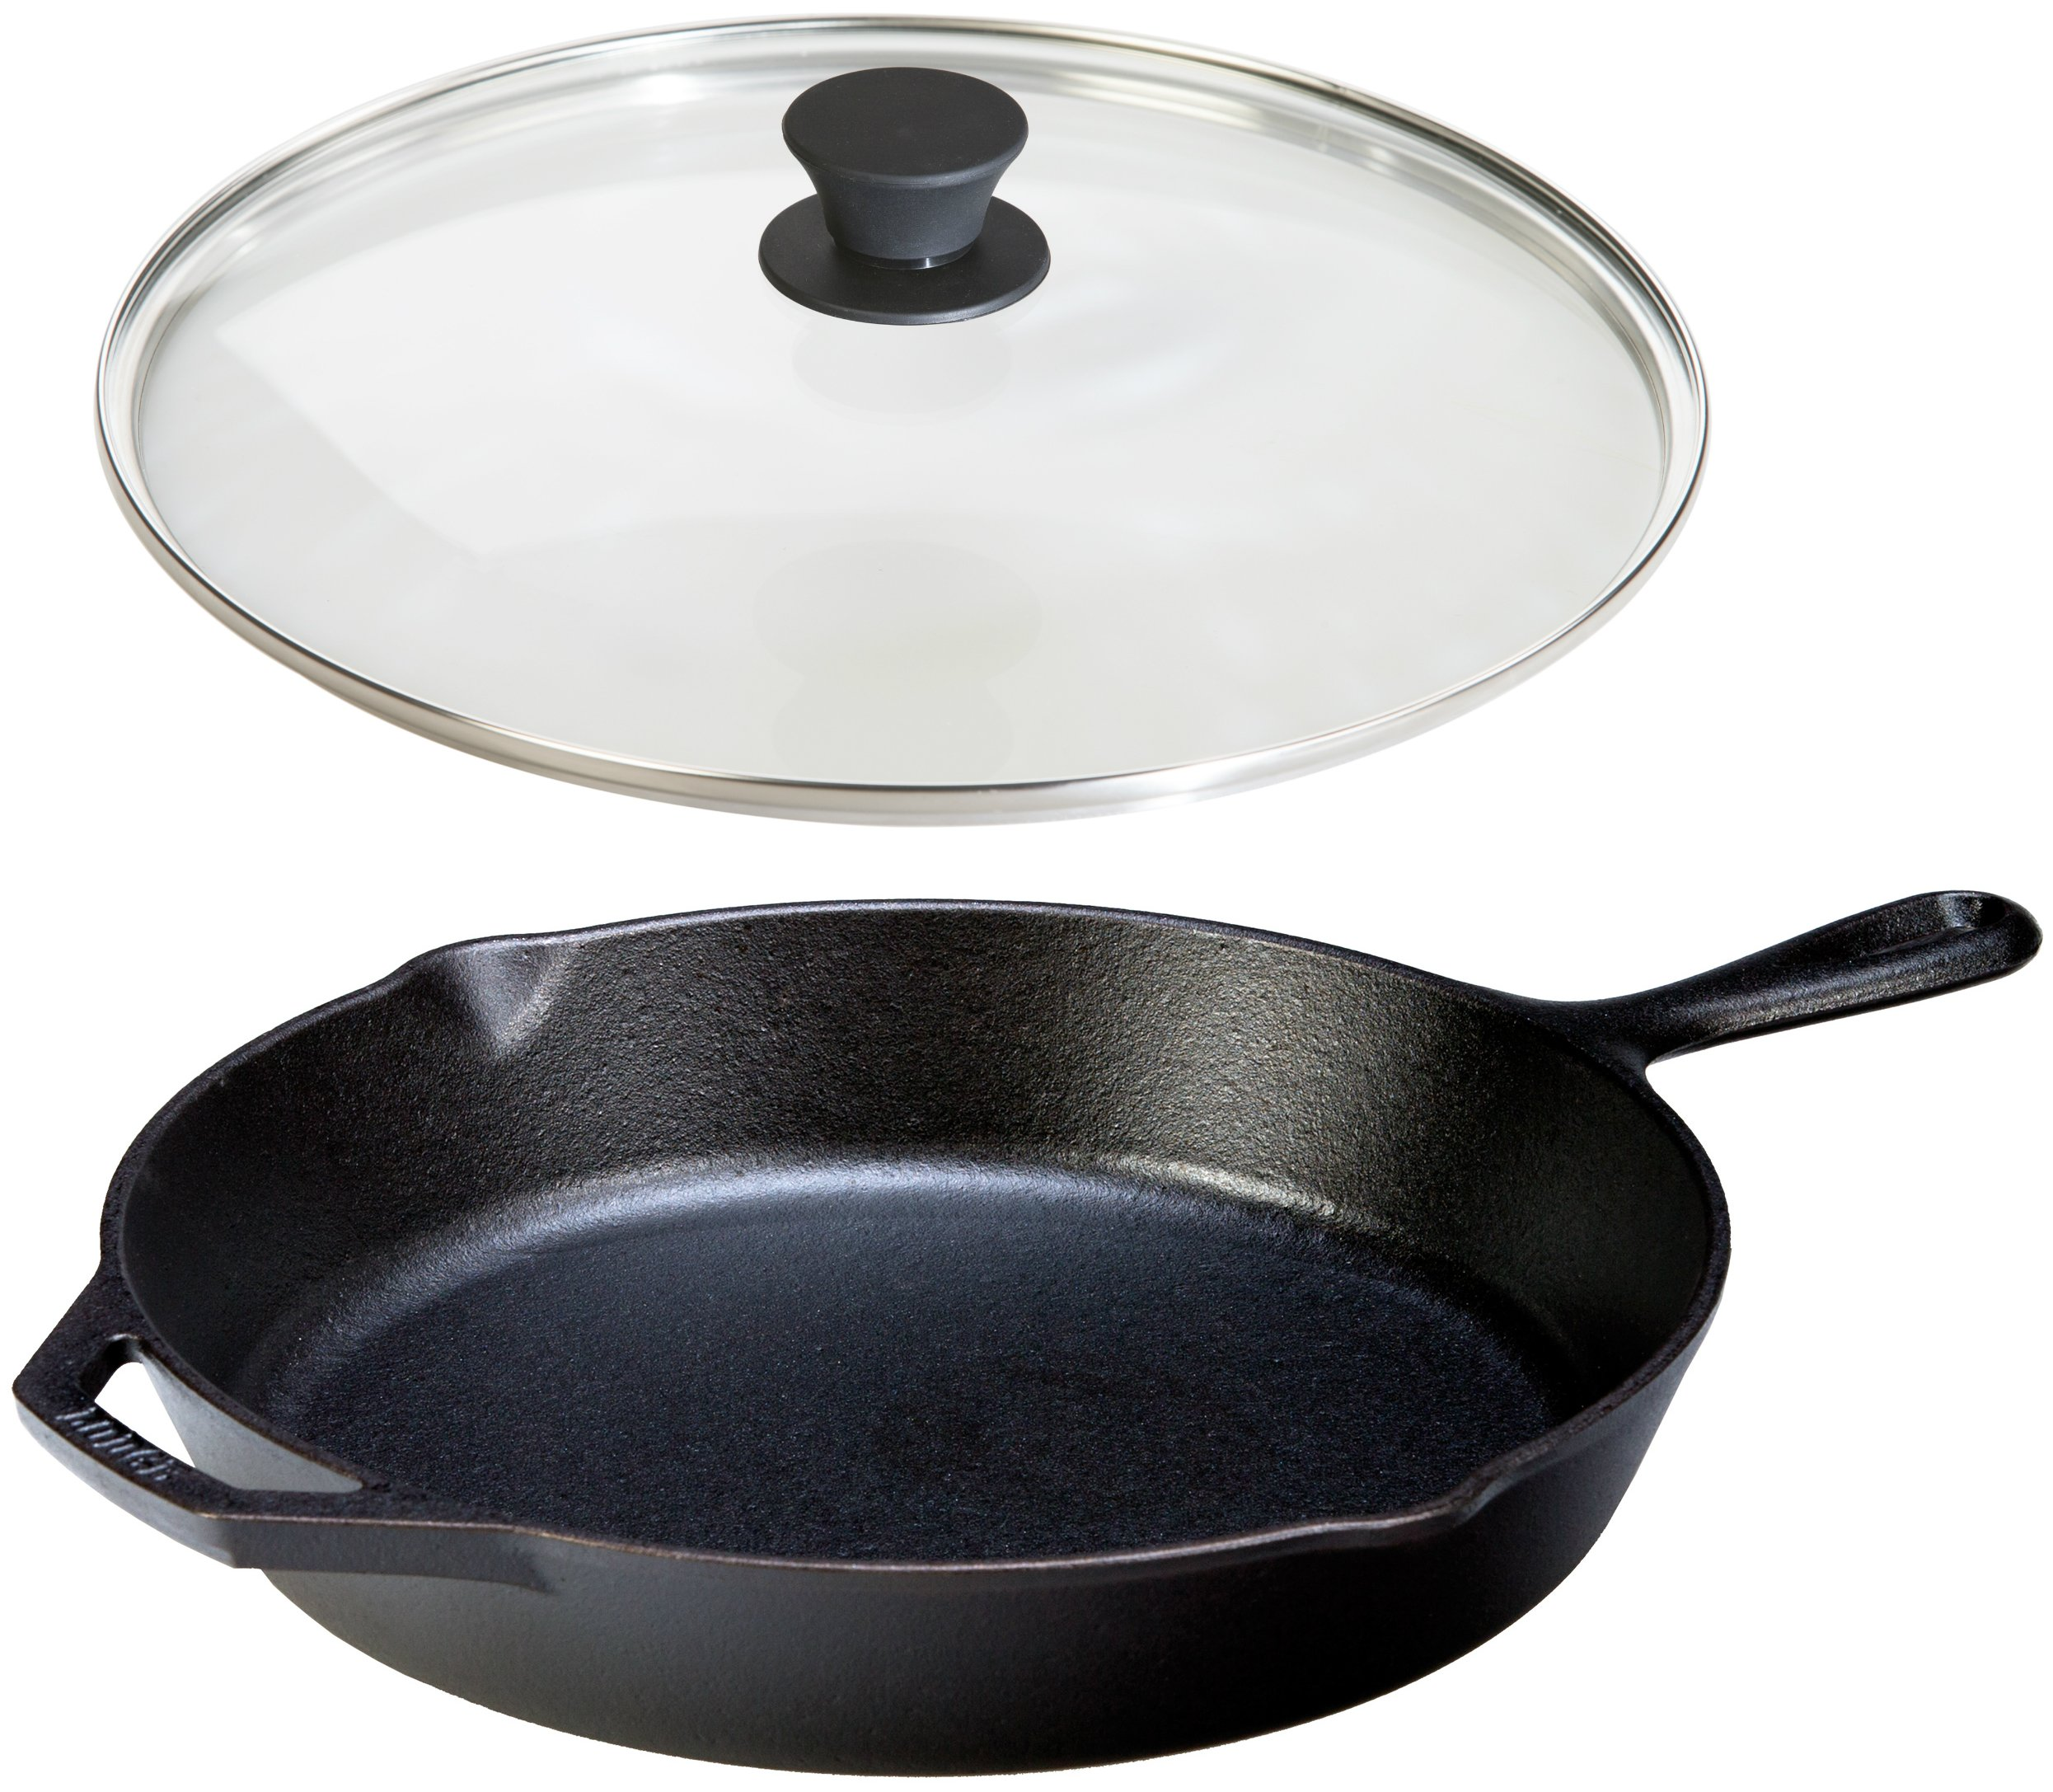 Lodge Seasoned Cast Iron Skillet with Tempered Glass Lid (12 Inch) - Medium Cast Iron Frying Pan With Lid Set by Lodge